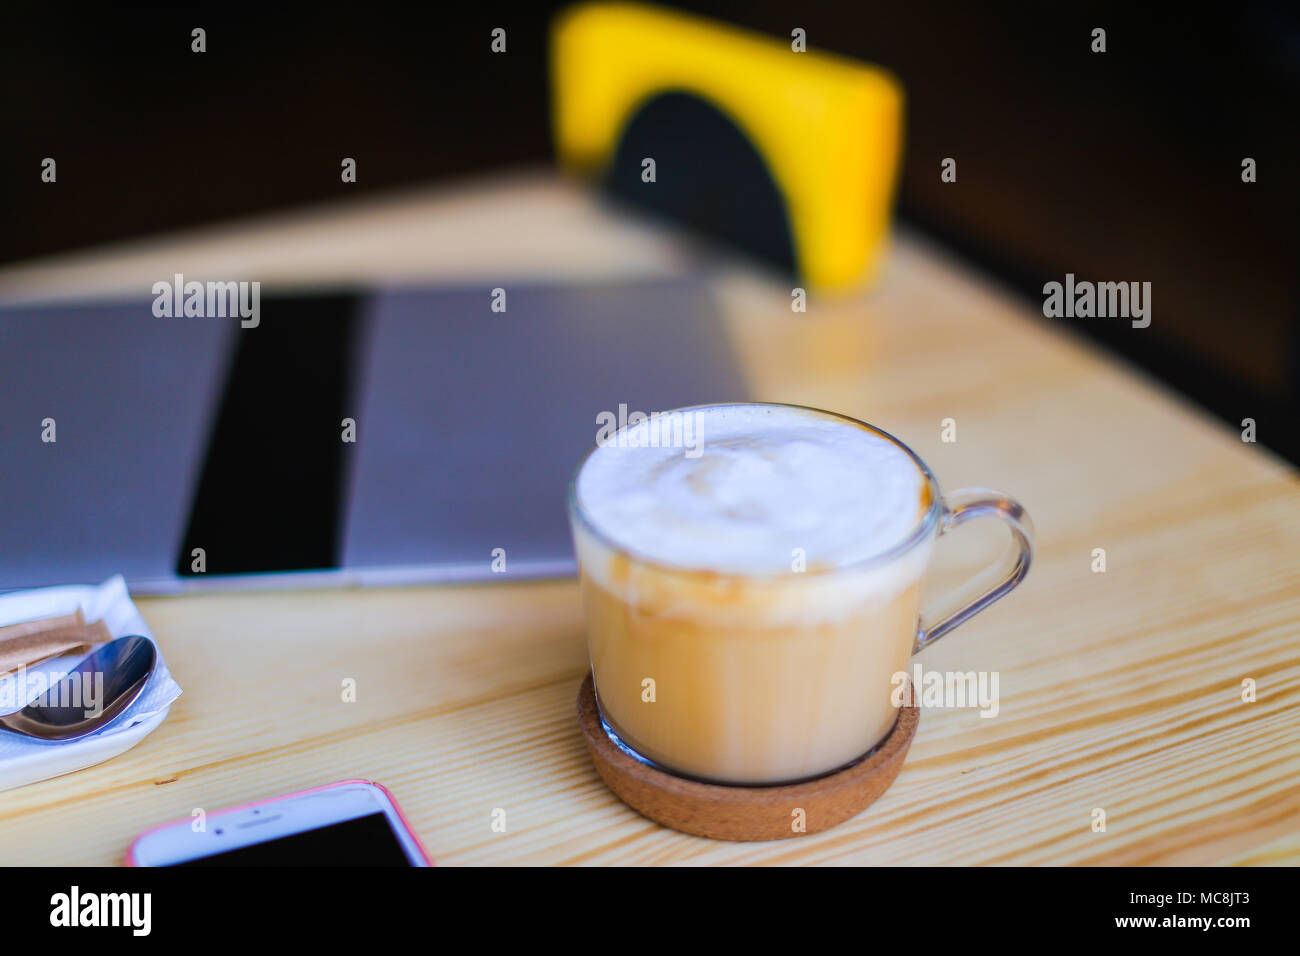 Cafe visitor made photo of table with cappuccino, laptop, smartphone.  - Stock Image